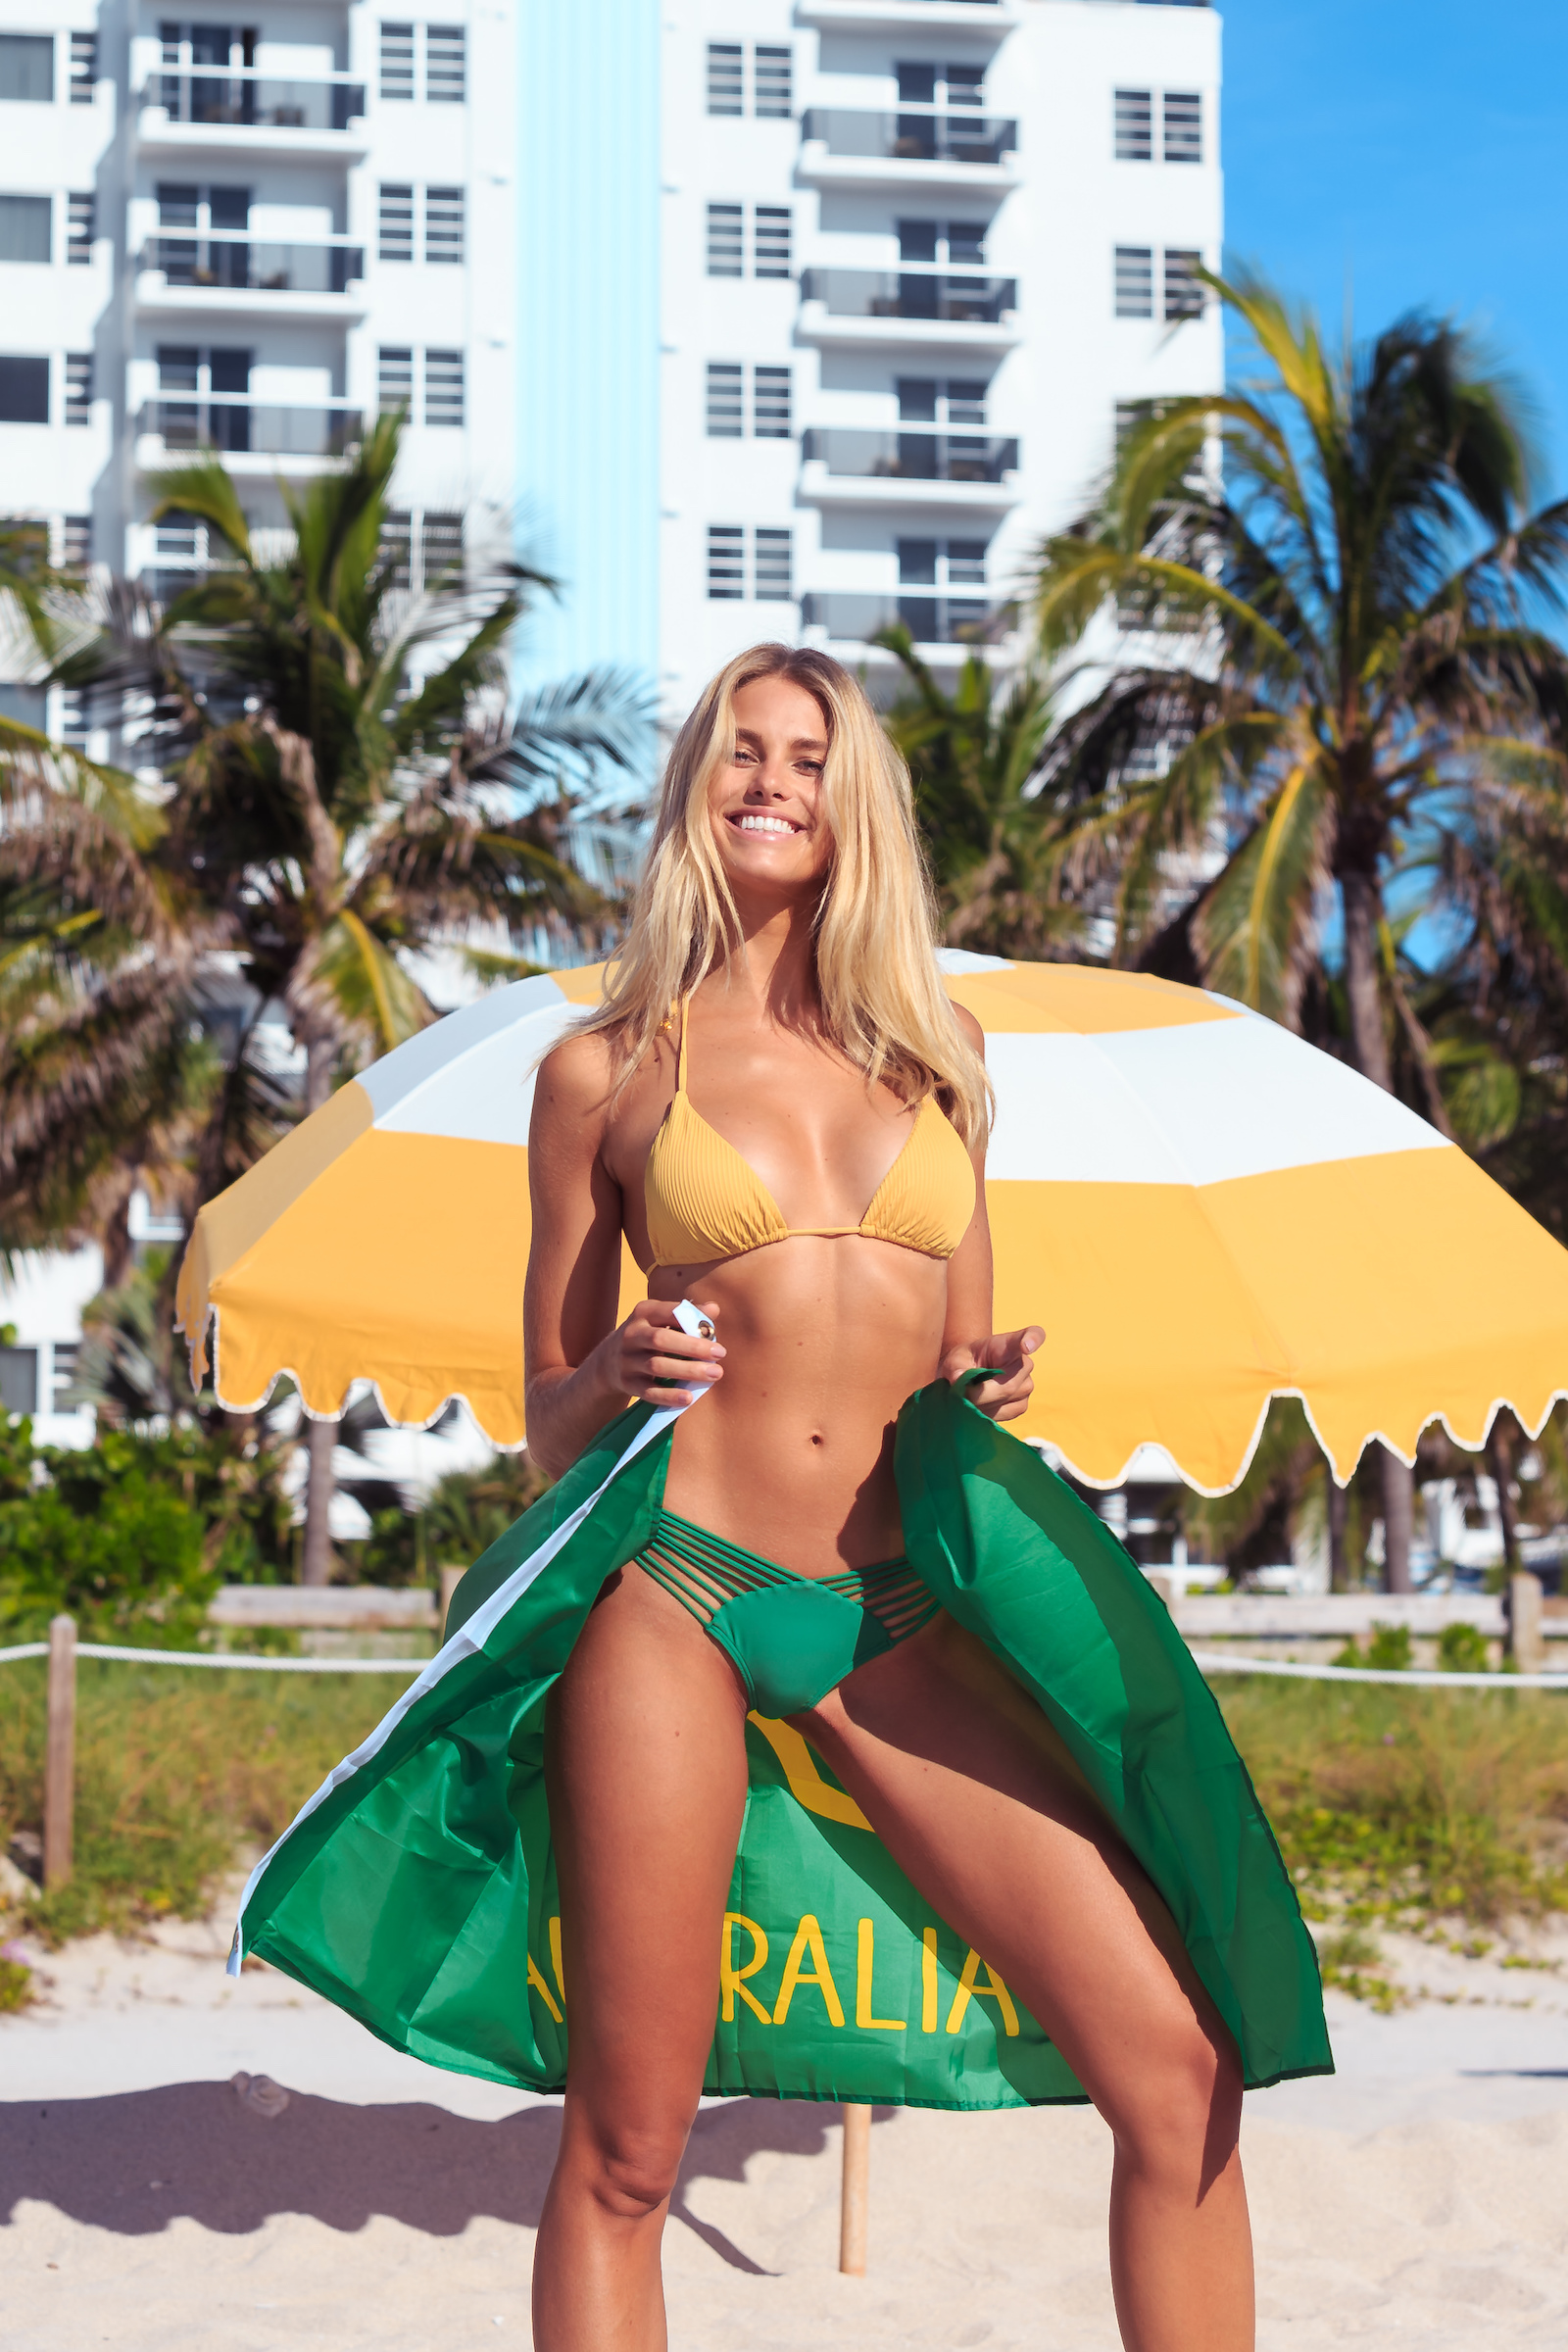 Australian model Natalie Roser showing love to her home while on the beach in Miami, FL.